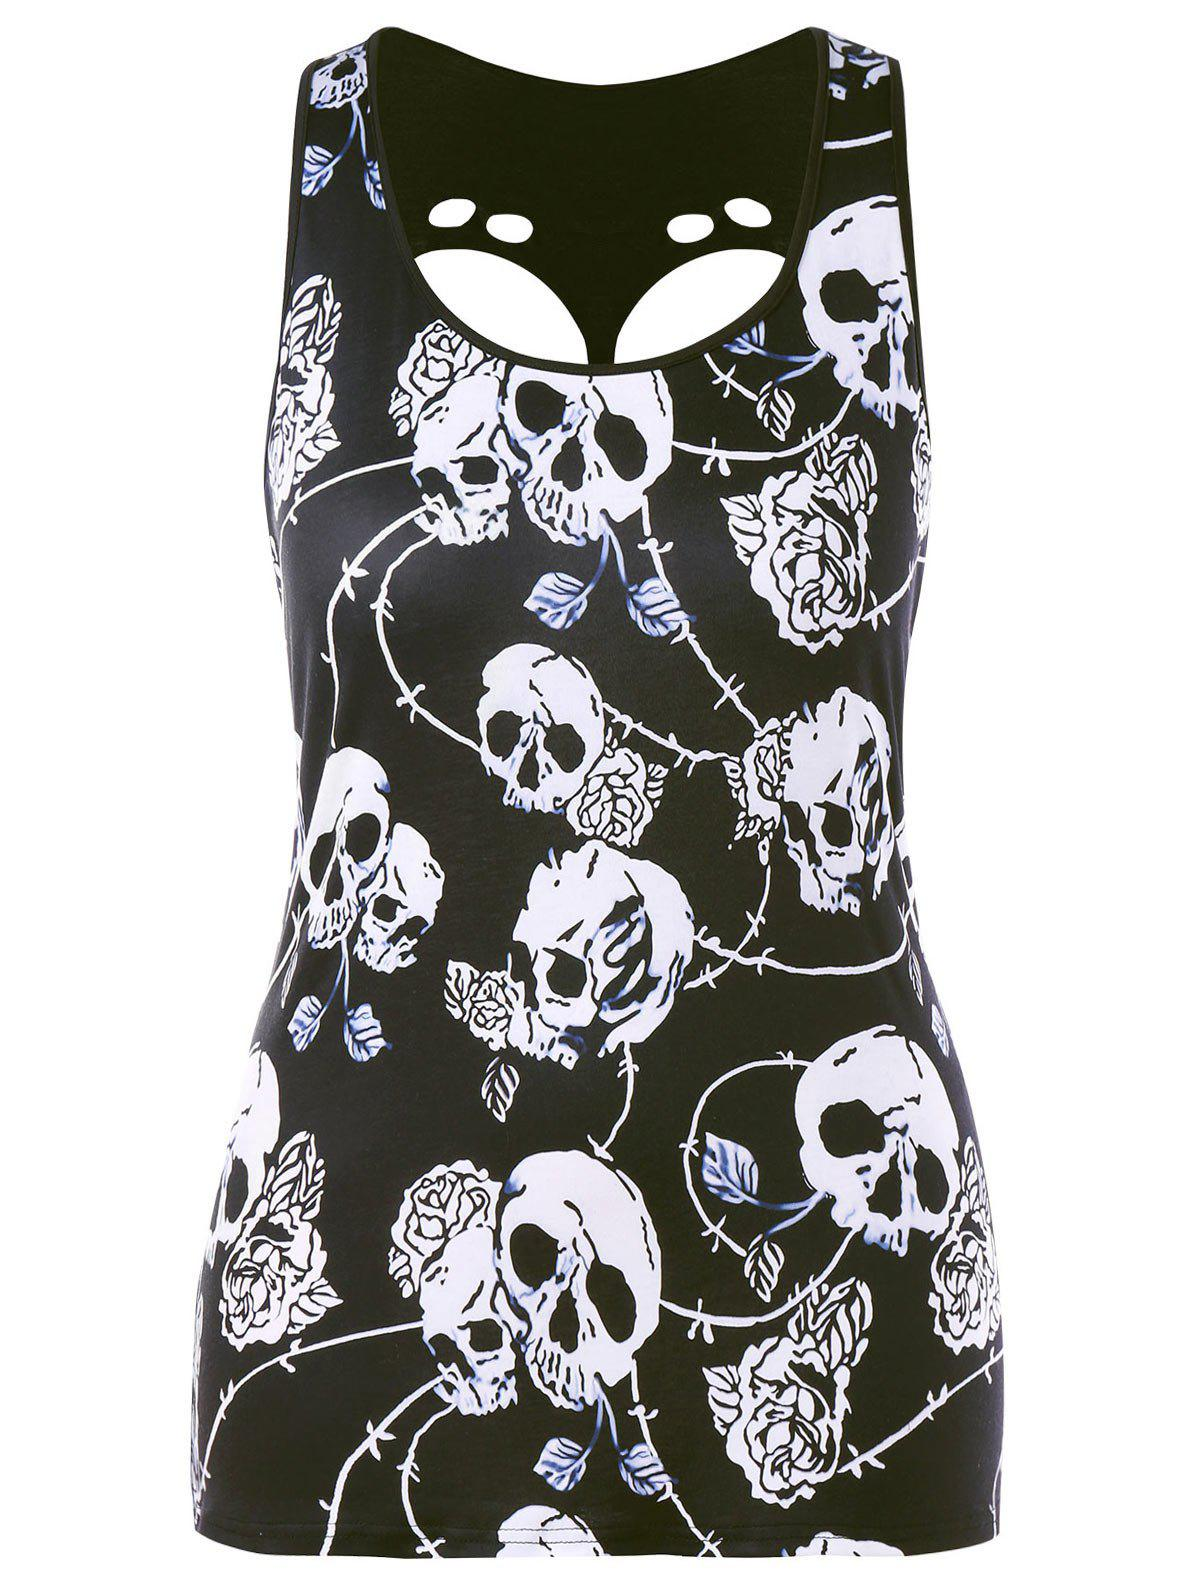 Plus Size Skull Print Cut Out Graphic Tank Top letter graphic long tank top